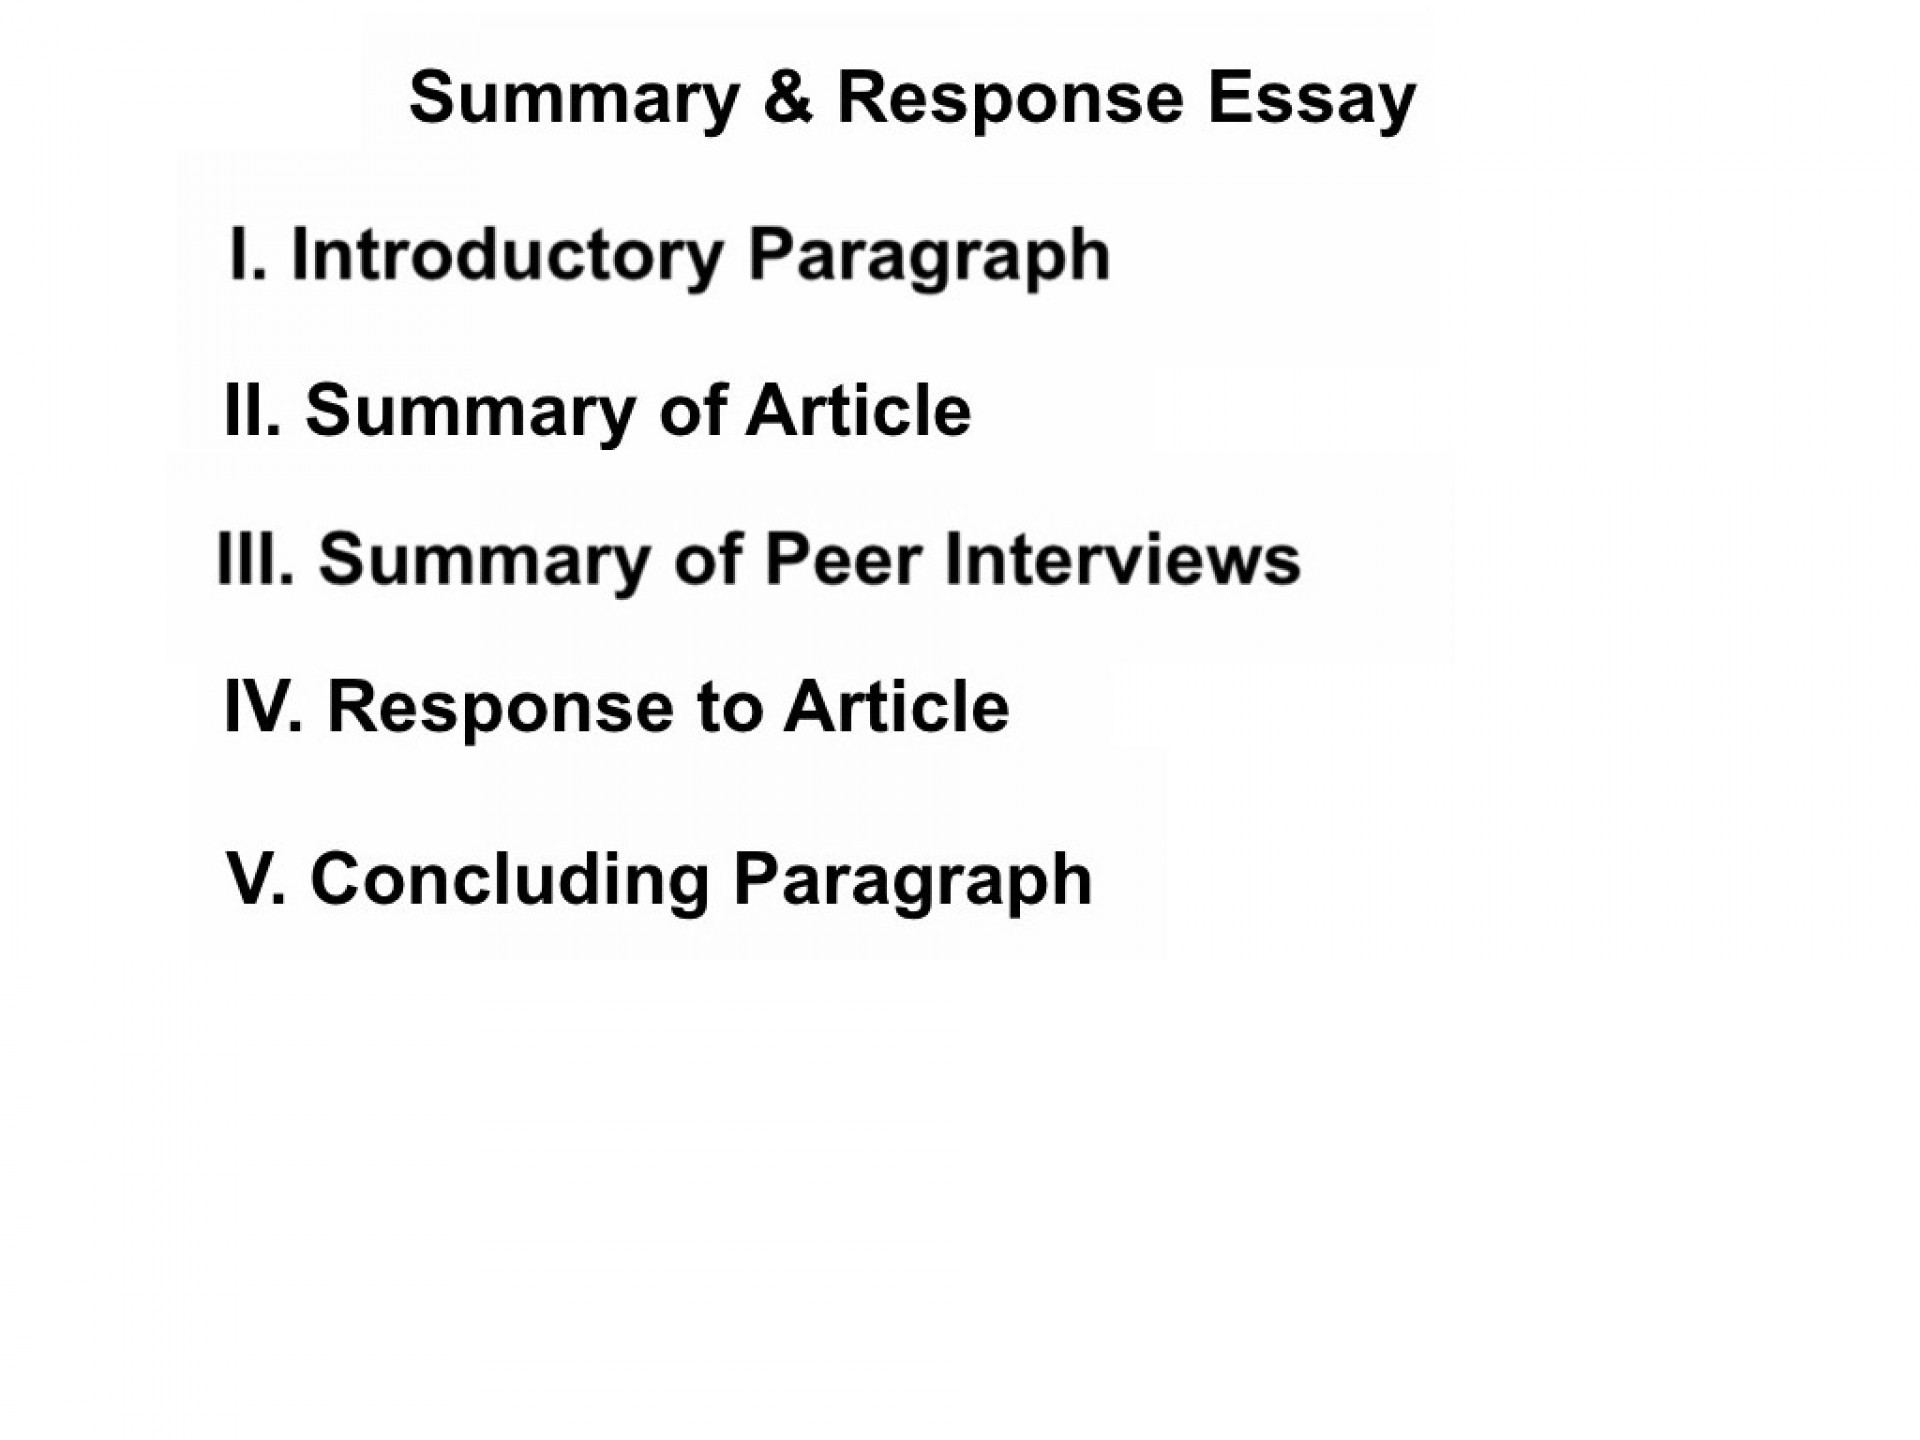 005 Summary And Response Essay Thumbs1310783831 Stupendous Topics Sample Thesis 1920